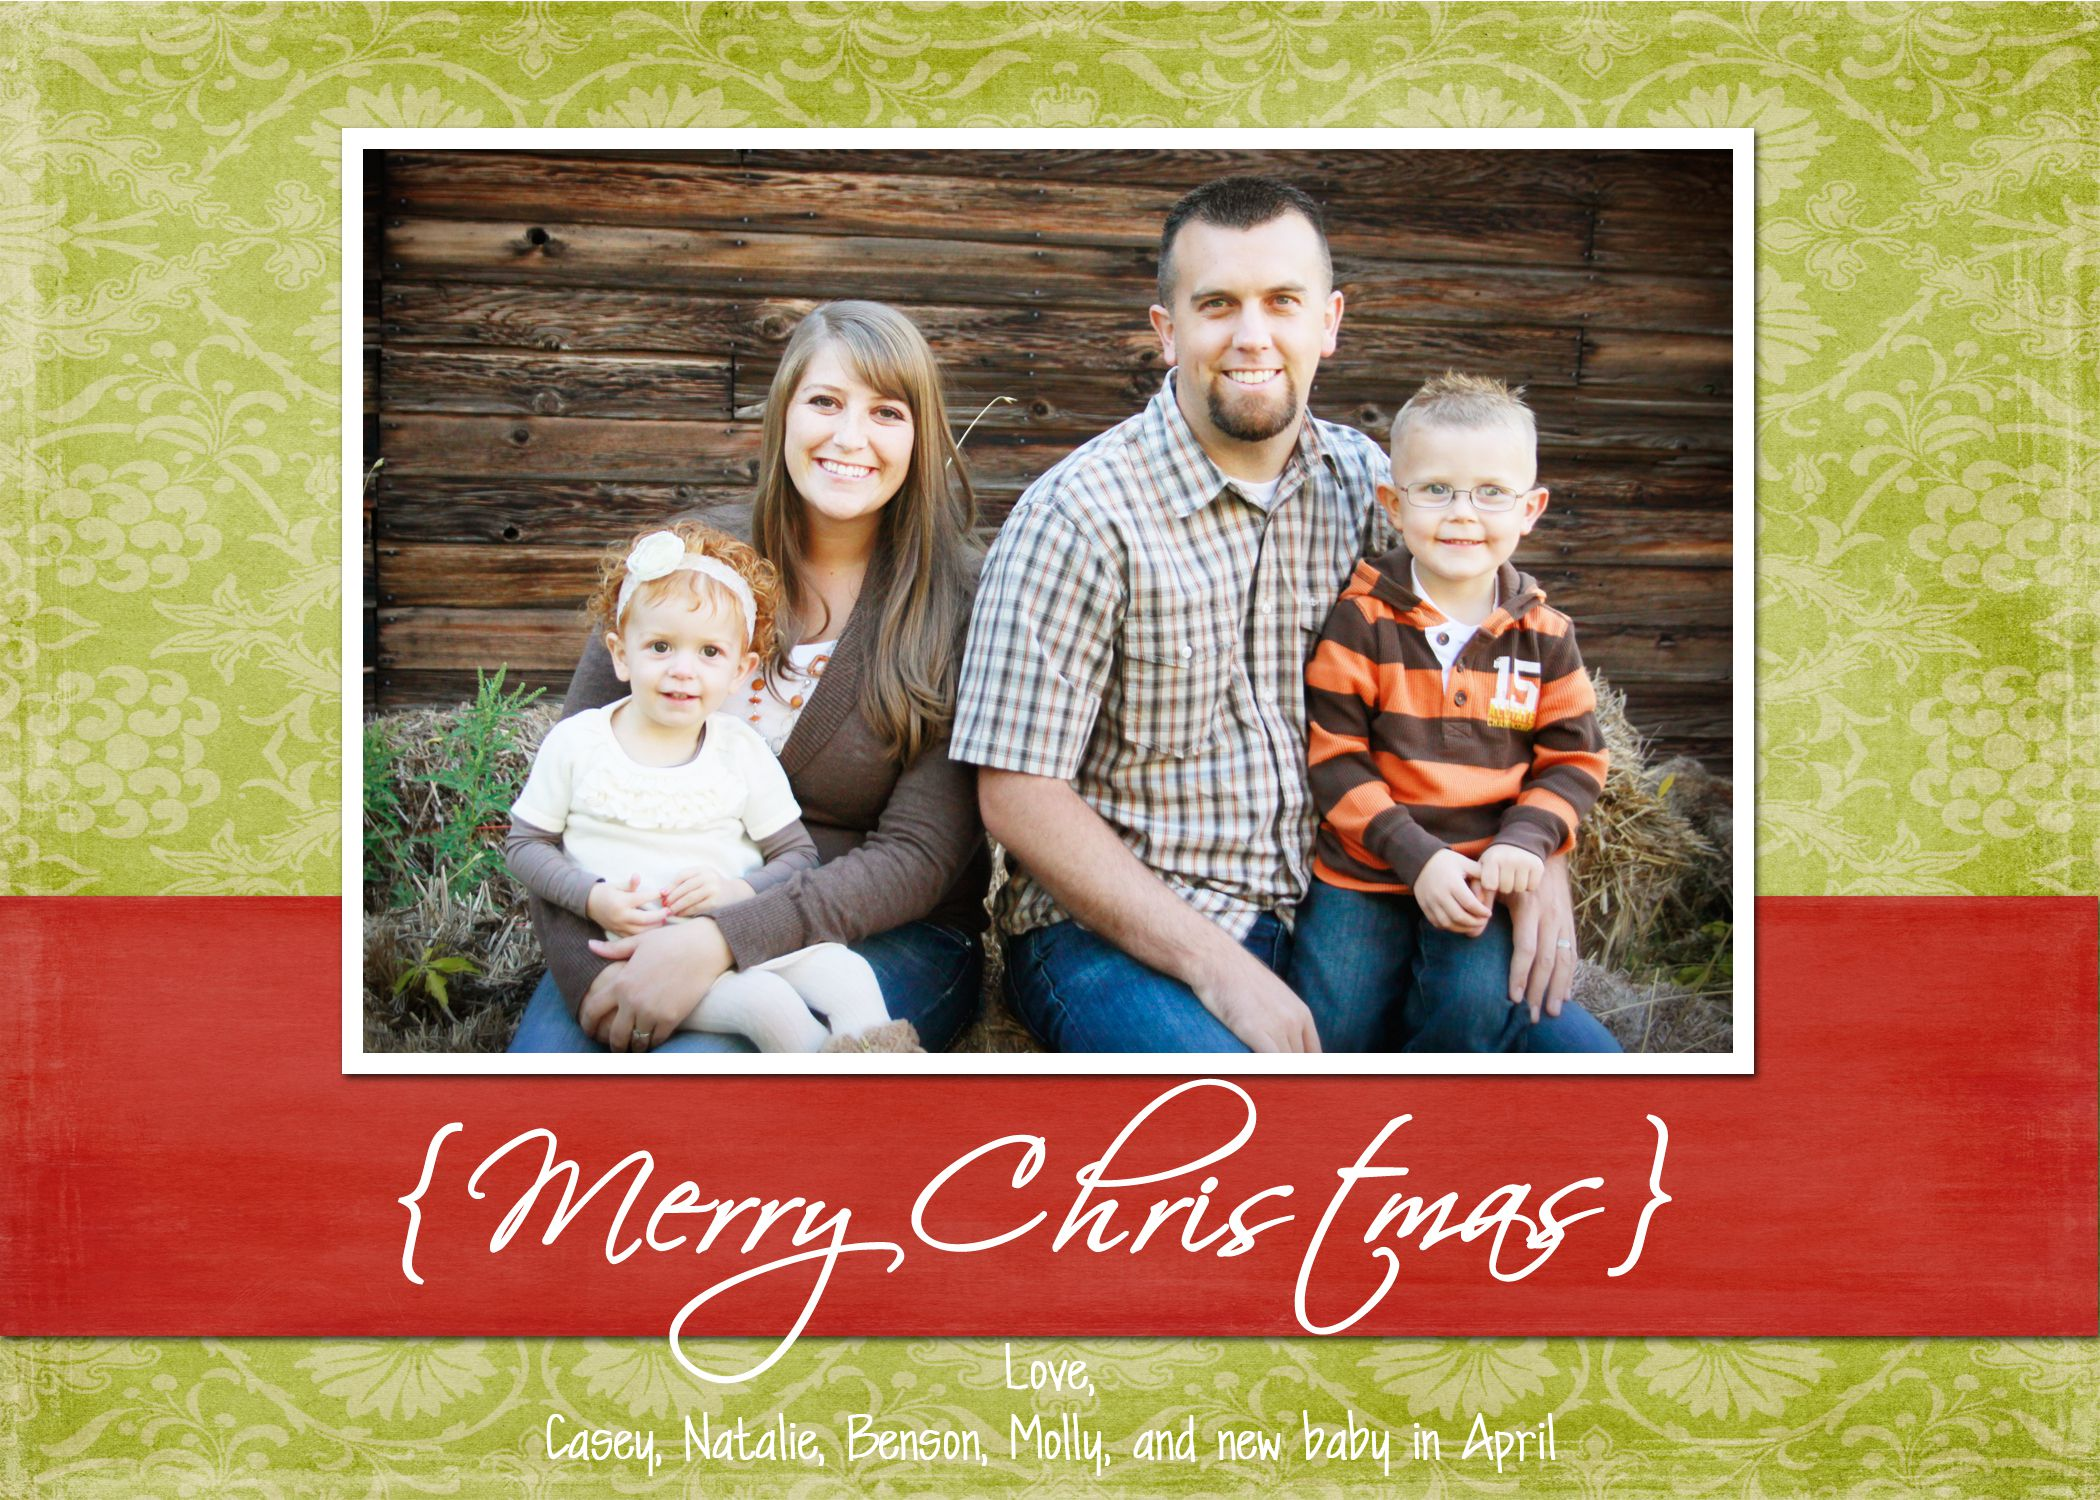 003 Magnificent Free Photo Christma Card Template Inspiration  Templates For Photoshop OnlineFull